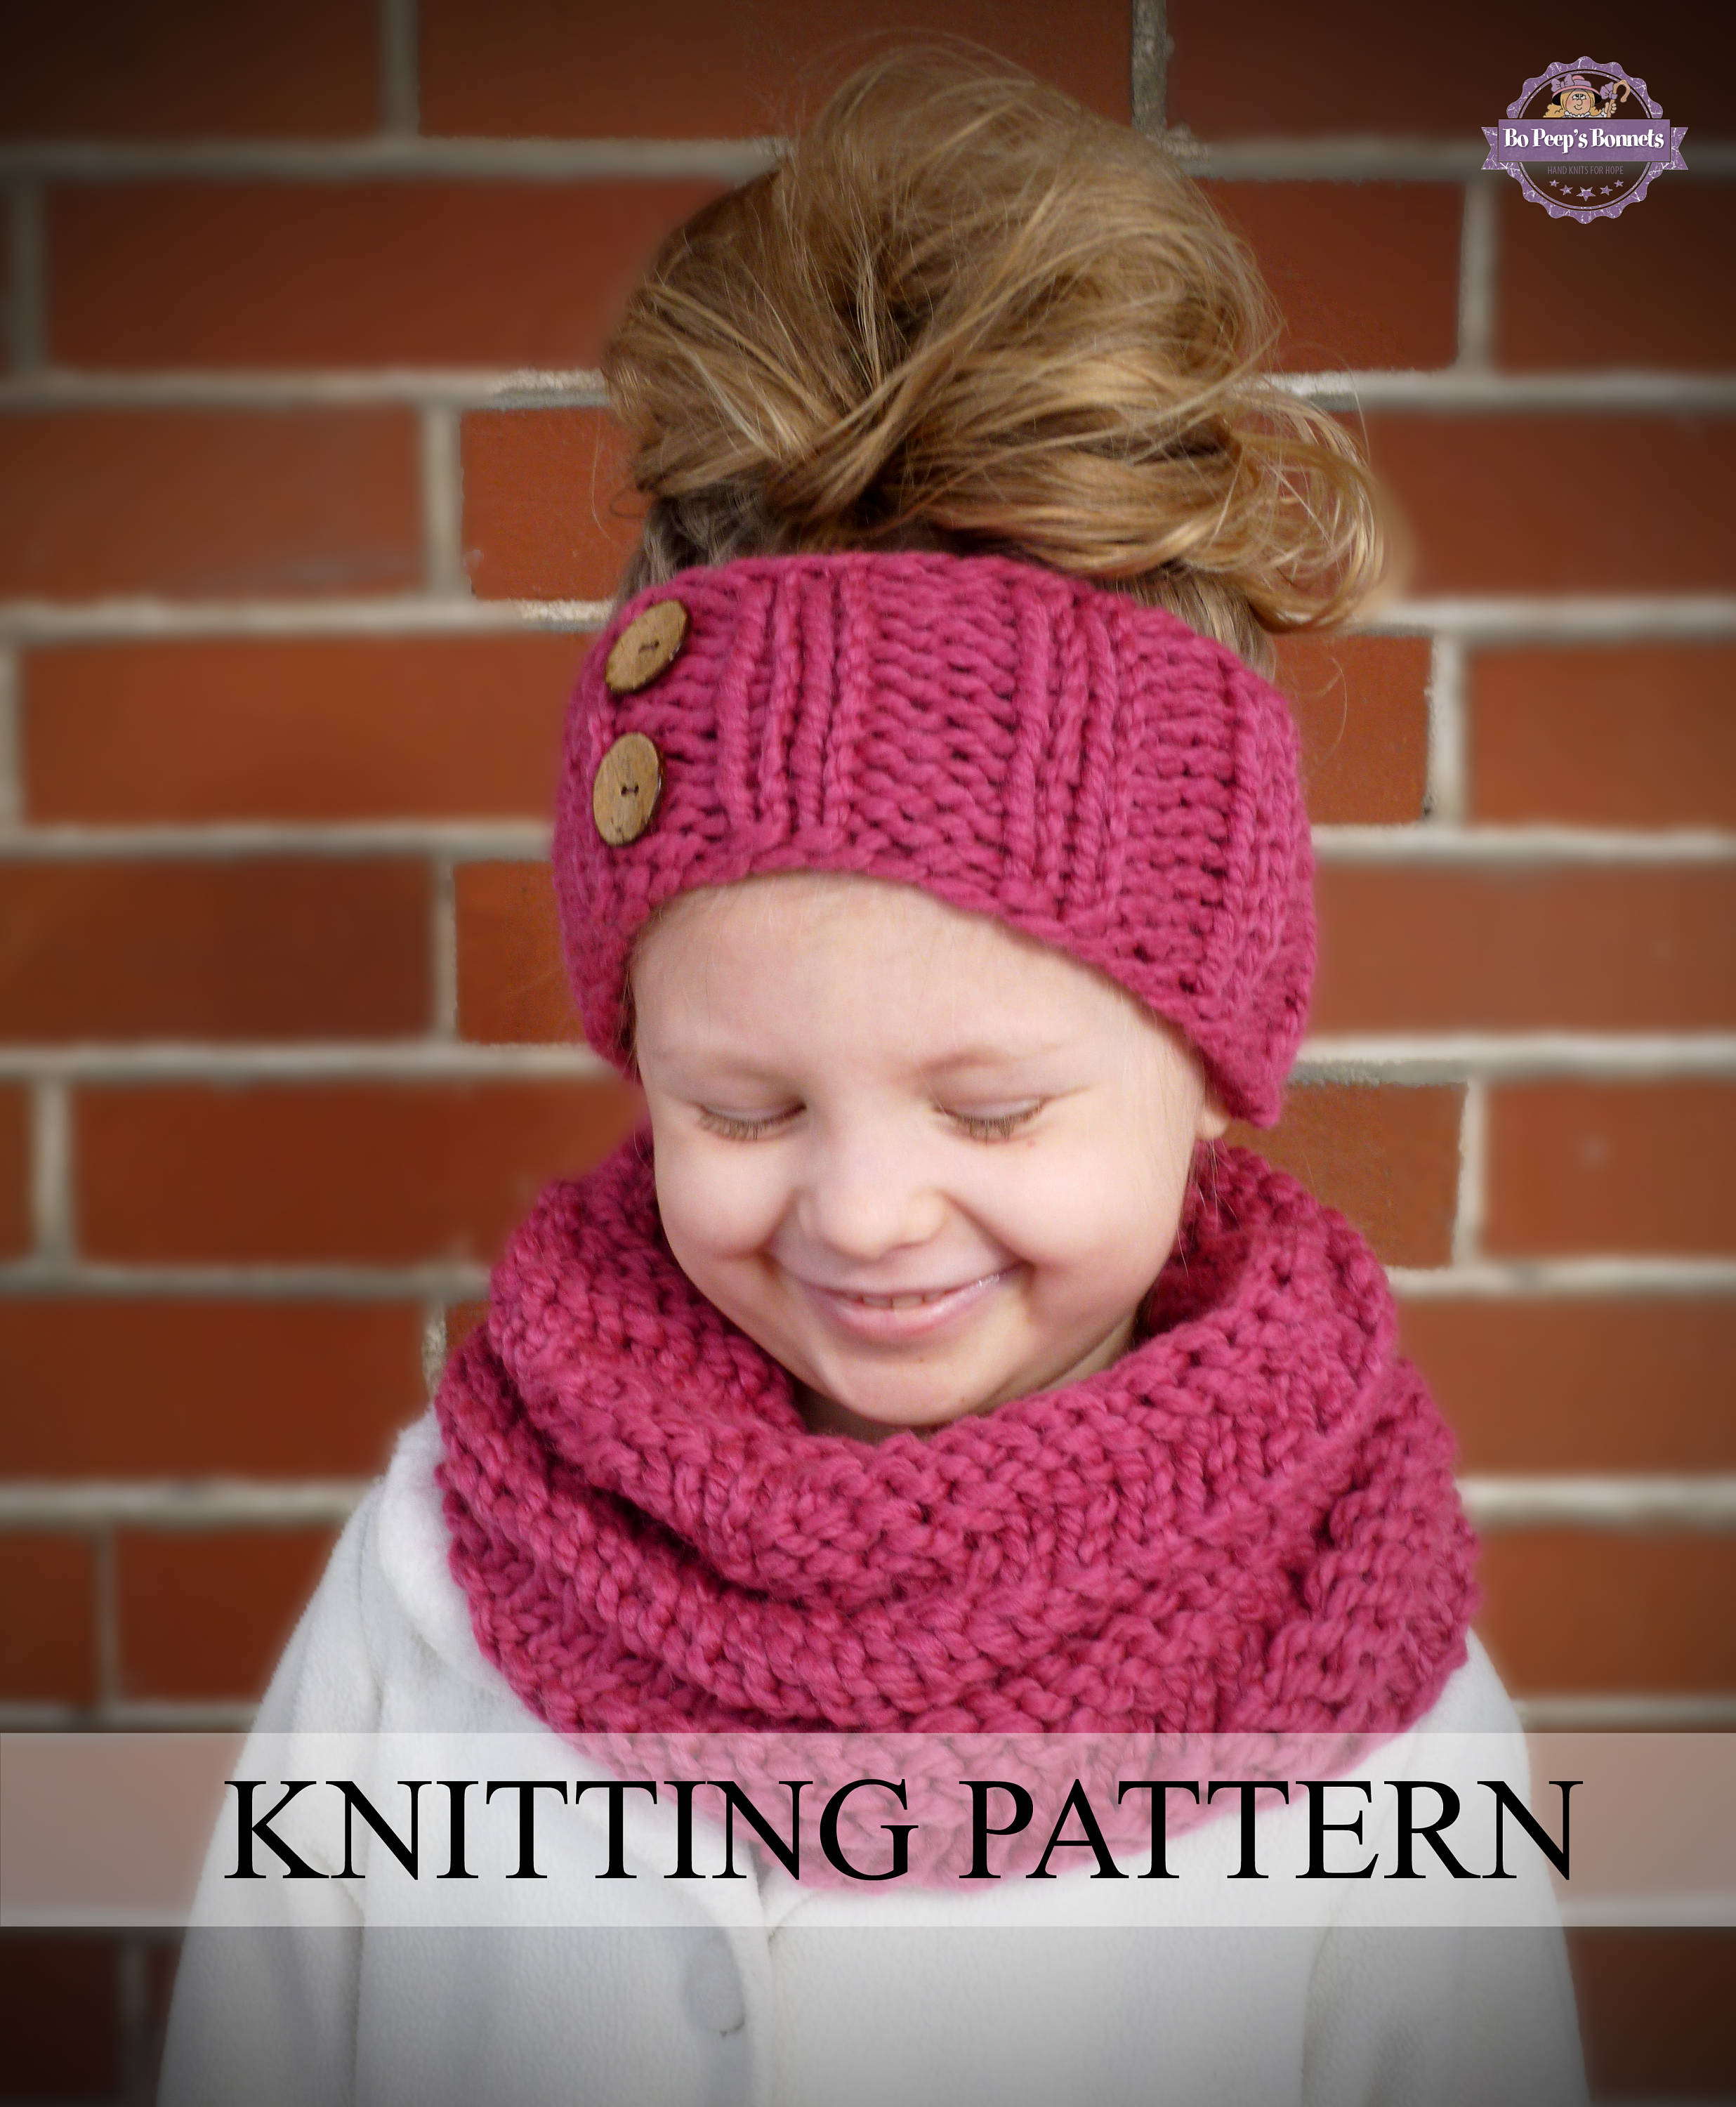 Knitting Pattern For Spiral Scarf : INSTANT DOWNLOAD Knitting PATTERN Spiral Cowl and Headband